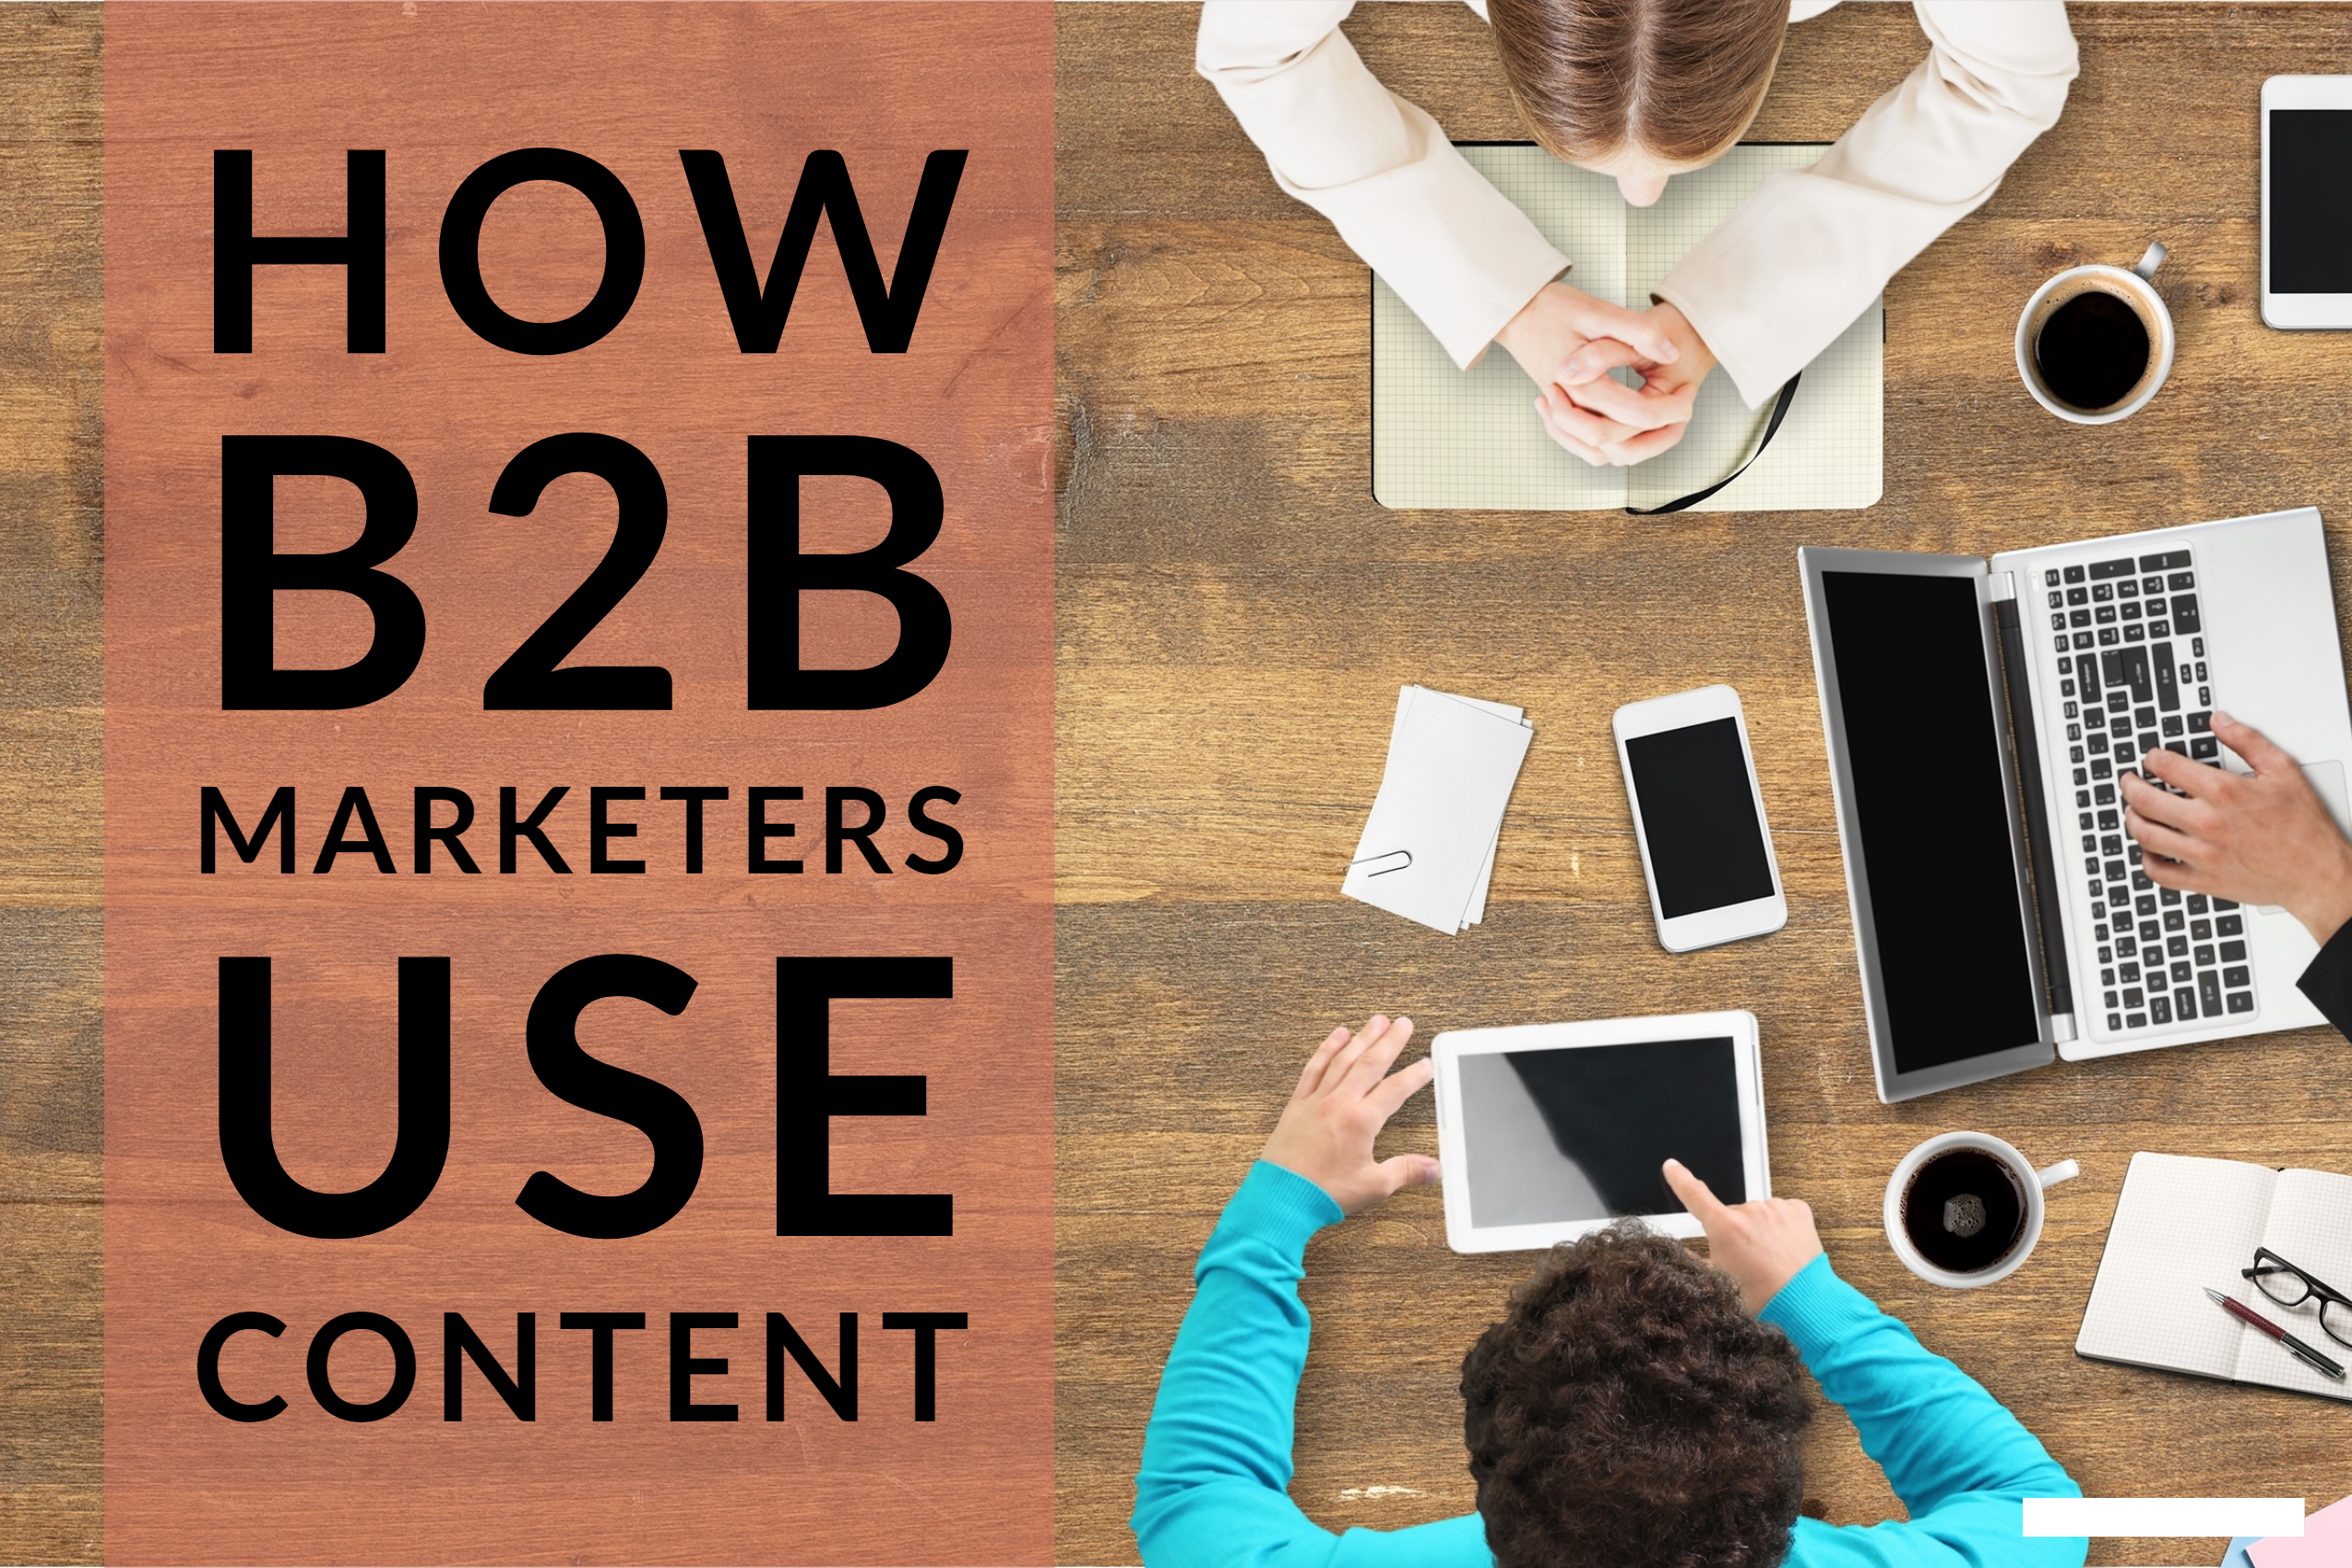 How B2B Marketers Use Content